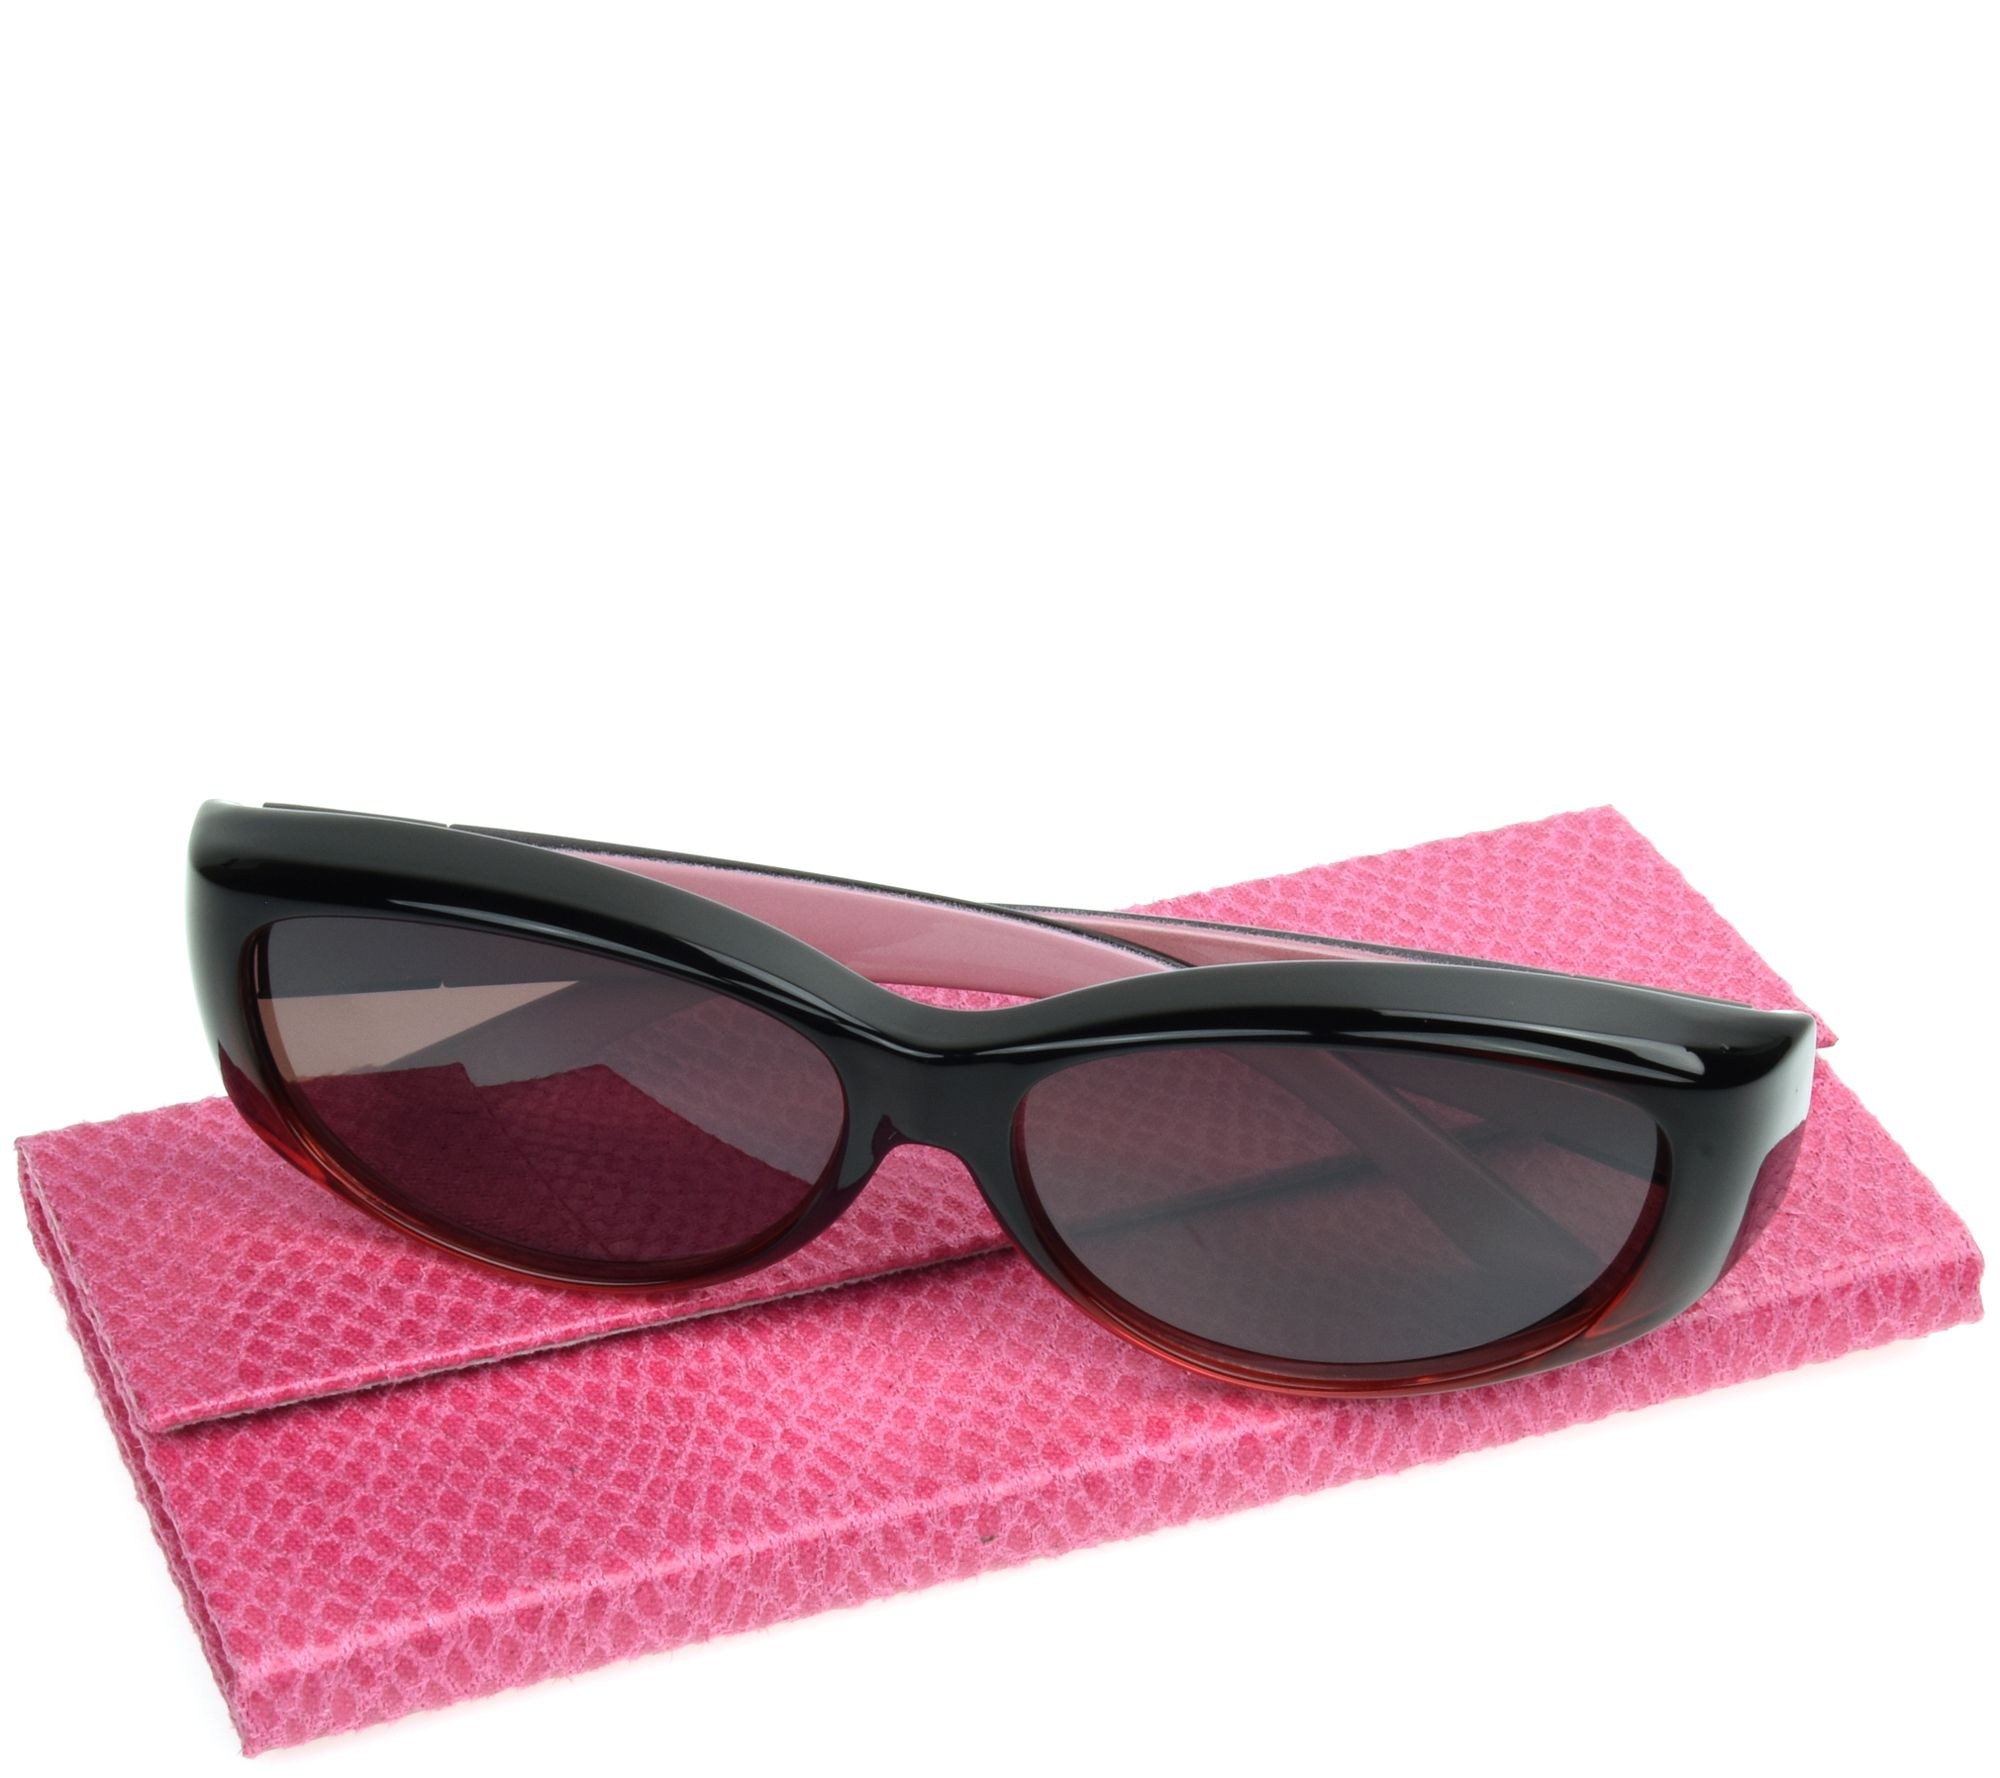 76cea055c Haven Fits Over Flirty Flower Sunglasses with Protective Case by Foster  Grant - Page 1 — QVC.com